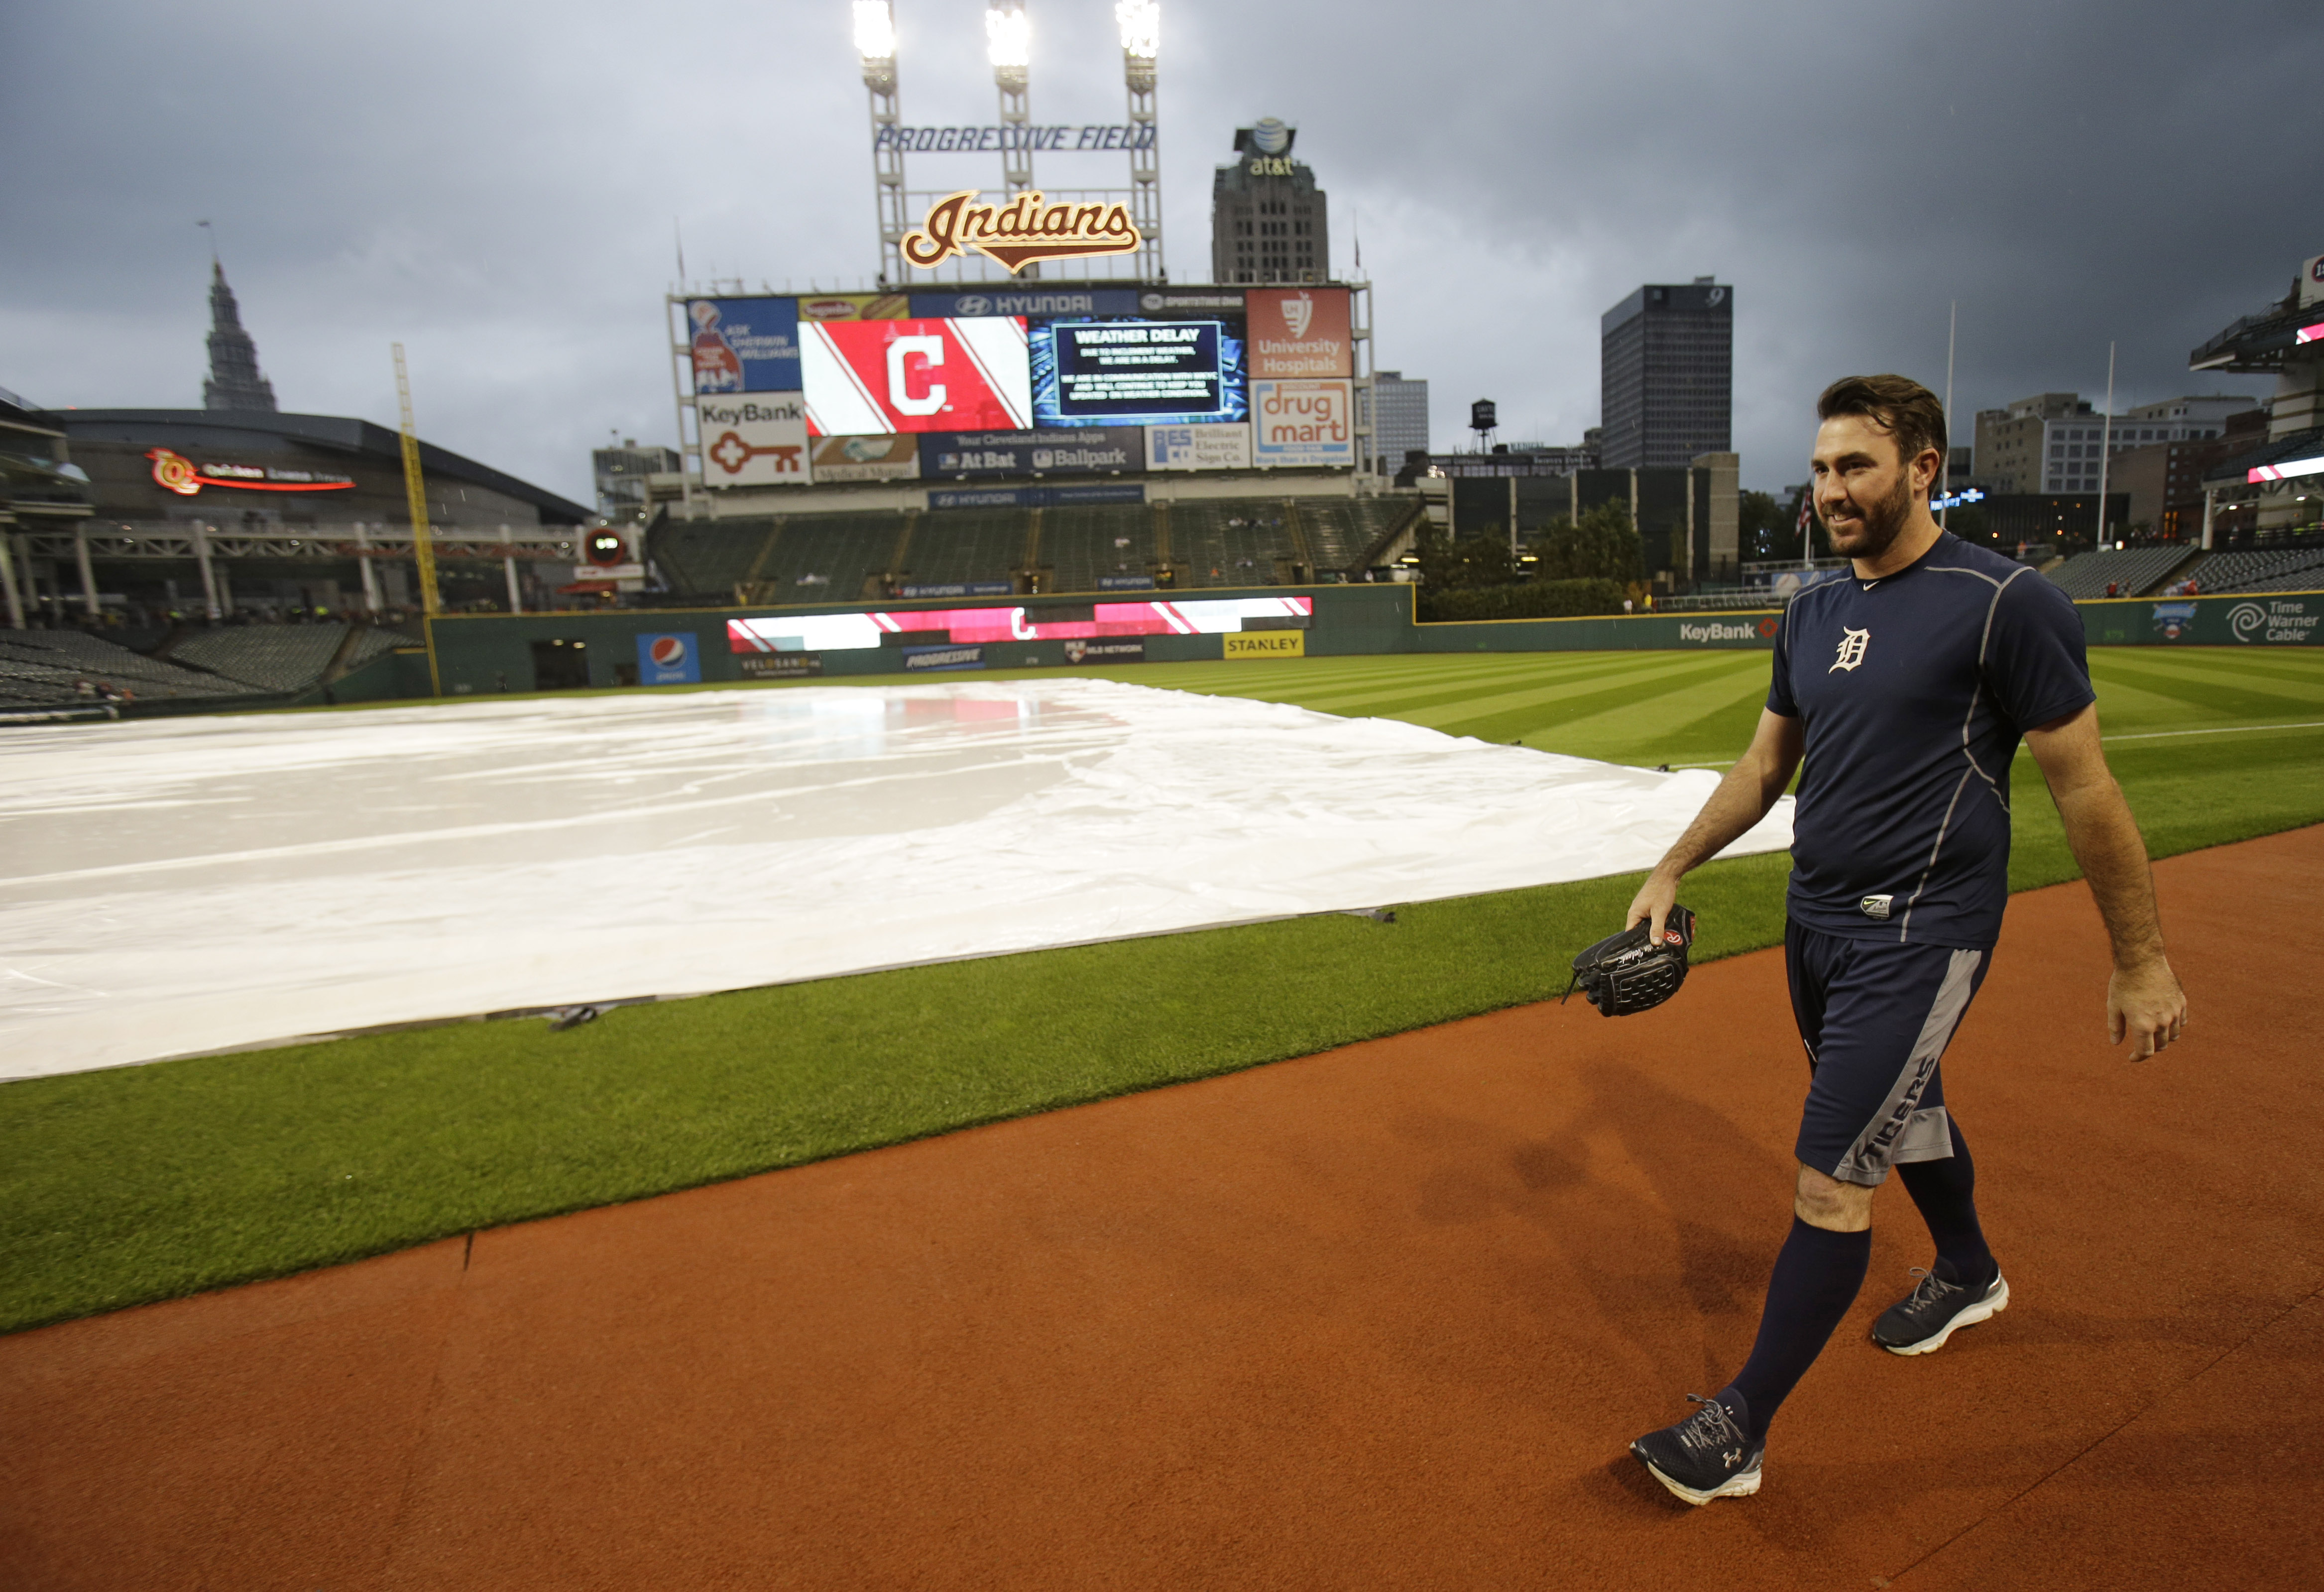 Detroit Tigers starting pitcher Justin Verlander walks off the field after warming up before a baseball game against the Cleveland Indians, Friday, Sept. 11, 2015, in Cleveland. The game was postponed due to the weather. (AP Photo/Tony Dejak)